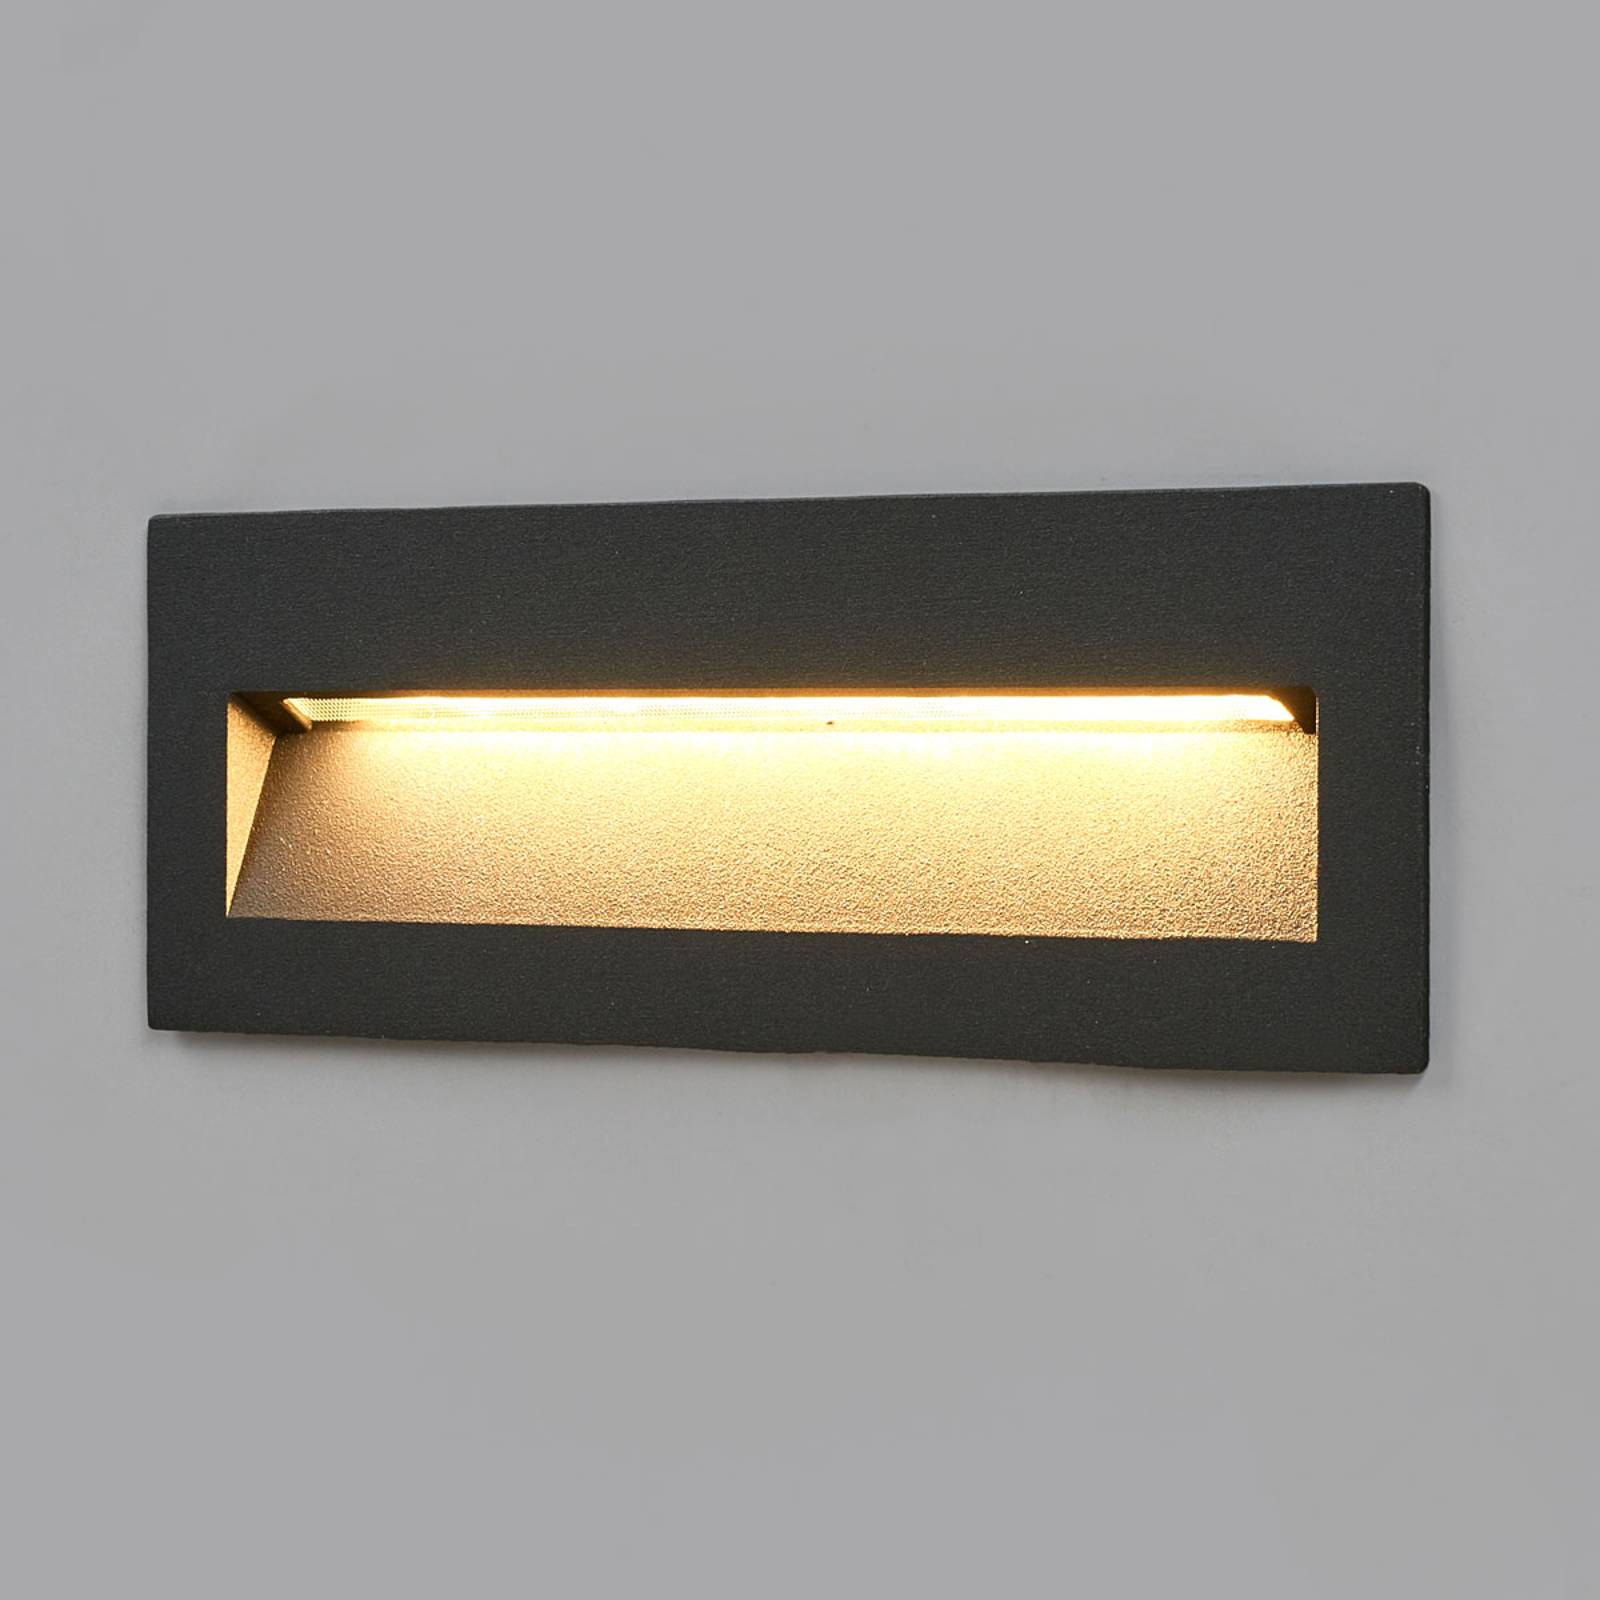 Dark LED recessed light Loya for outdoor walls from Lucande